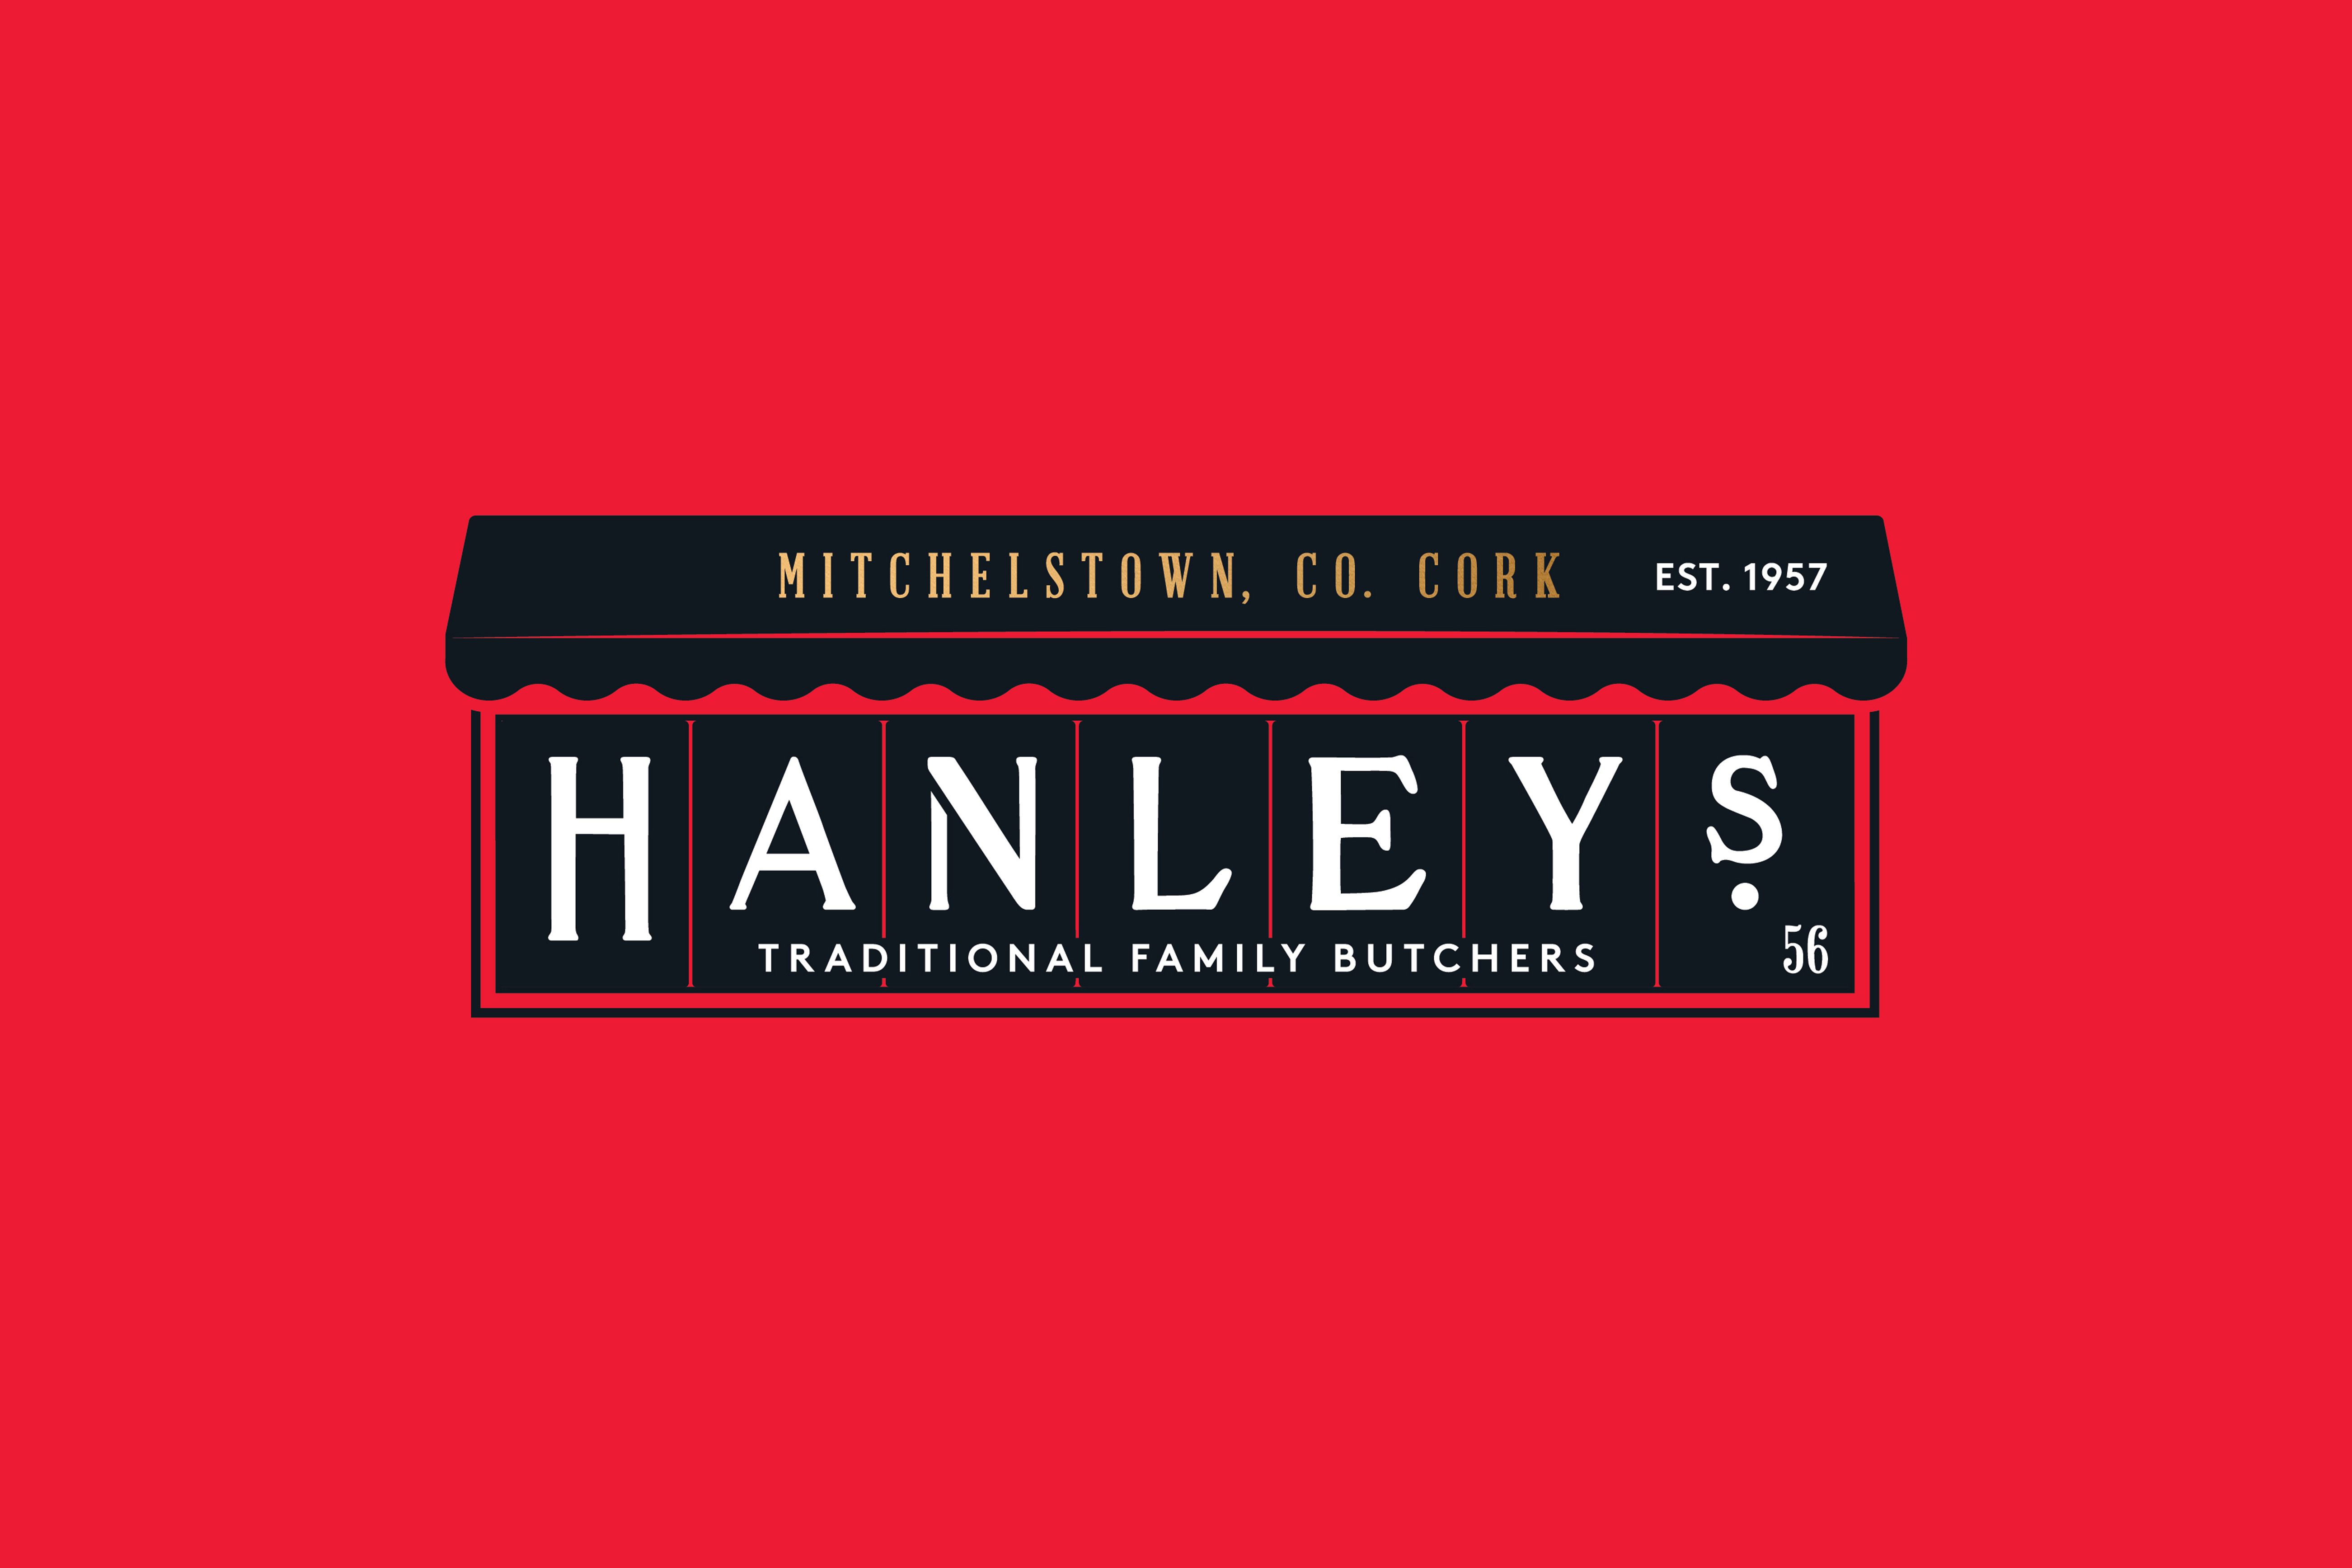 Cover image: Hanley's Traditional Family Butchers